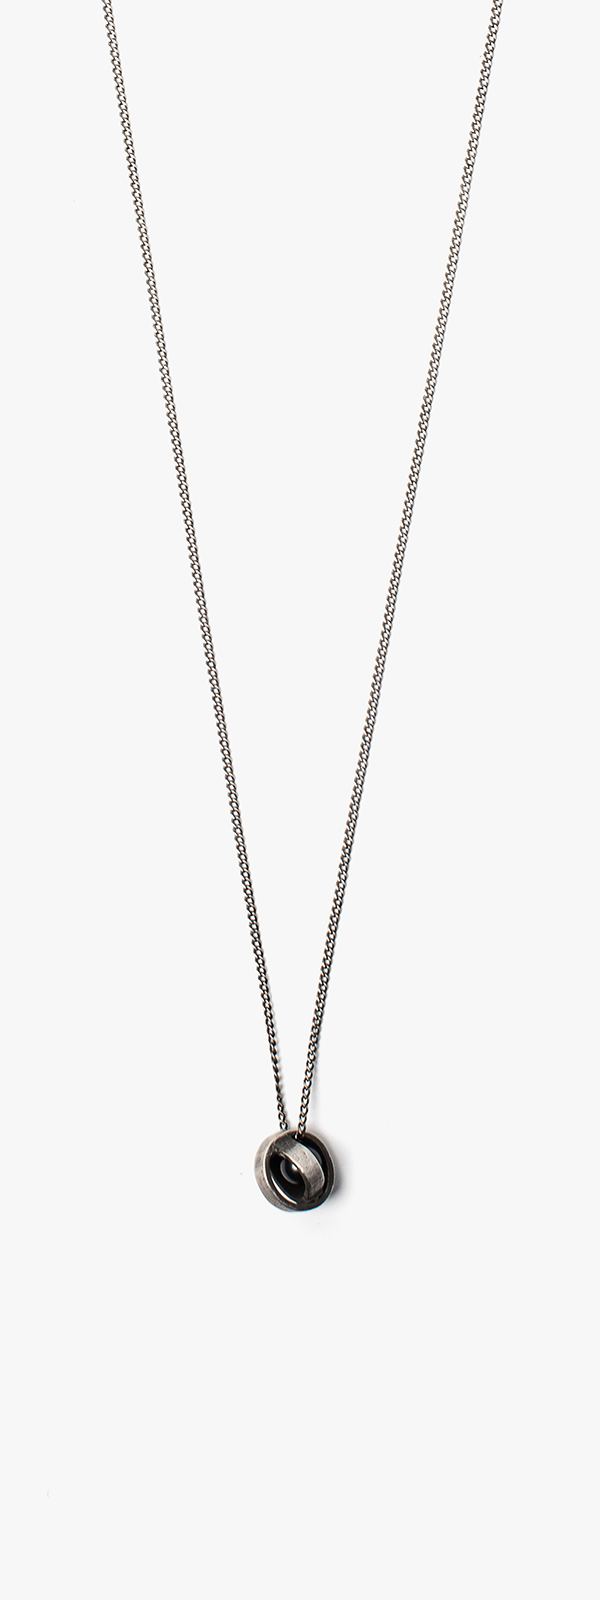 Image of Black Pearl In Sphere Necklace 015